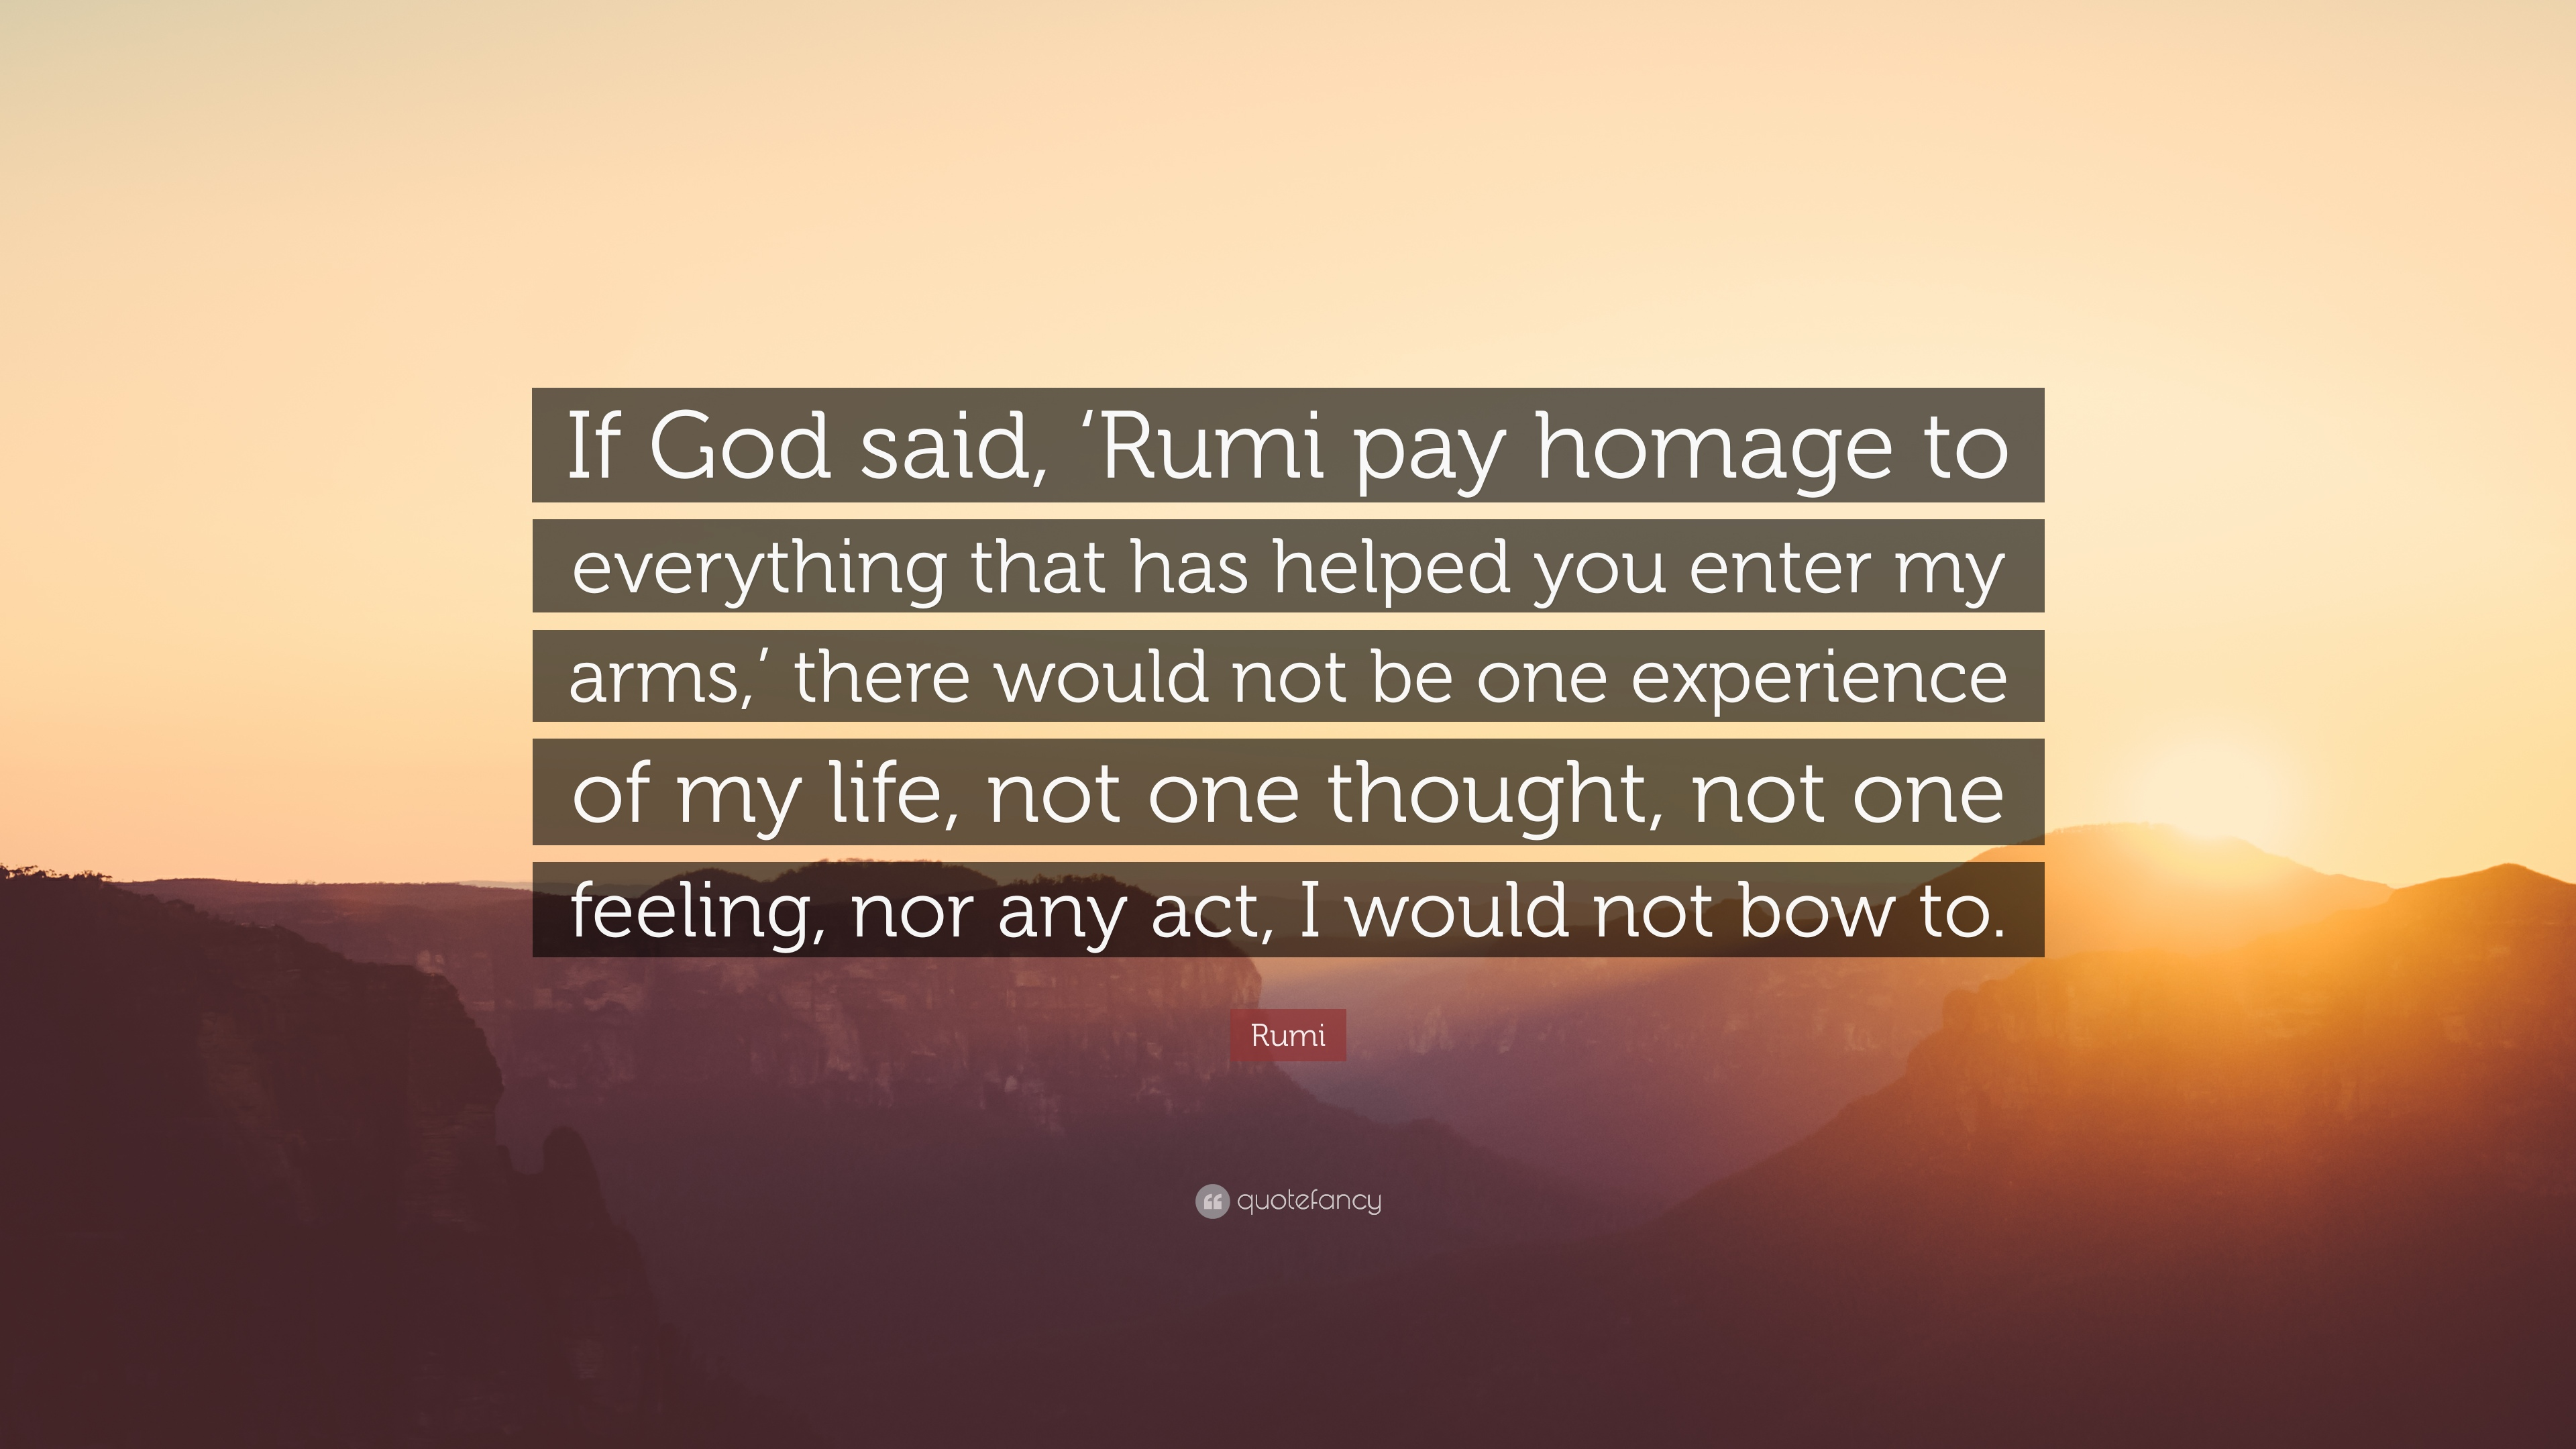 Rumi Quotes On Life Rumi Quotes On Life Experiences